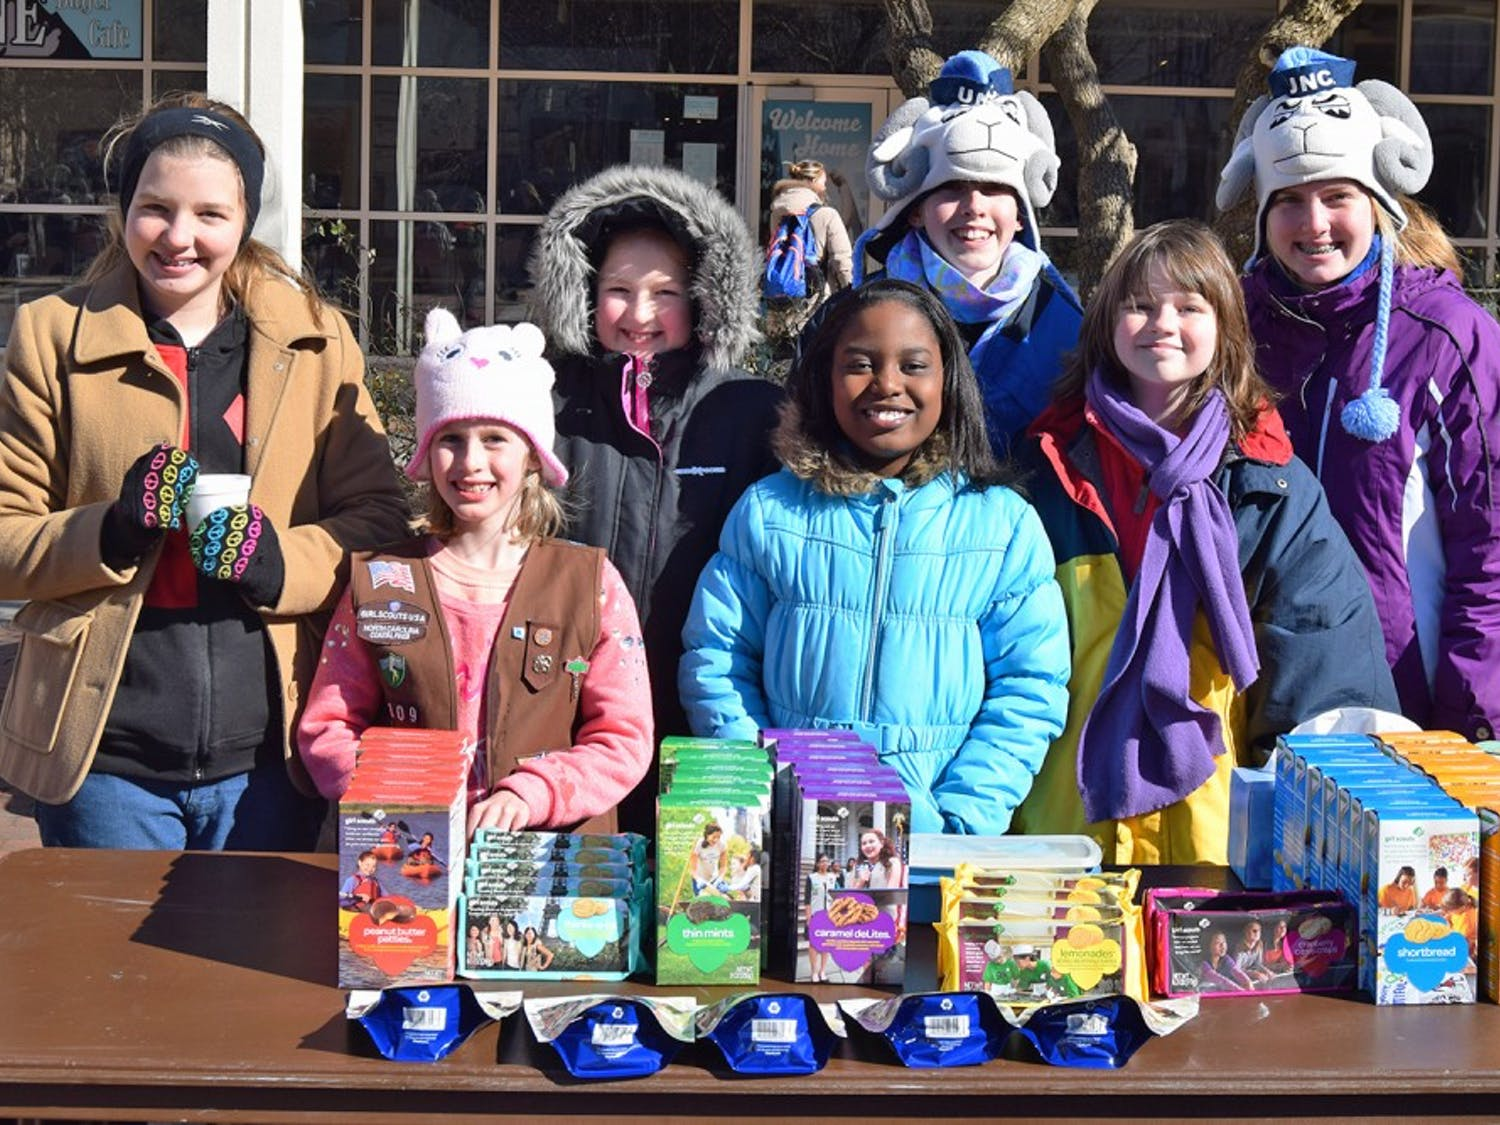 Girl Scout Troop 1309 out of Durham was selling cookies in the Pit today and besides their wonderful selection all troops are now able to accept payment by credit card!